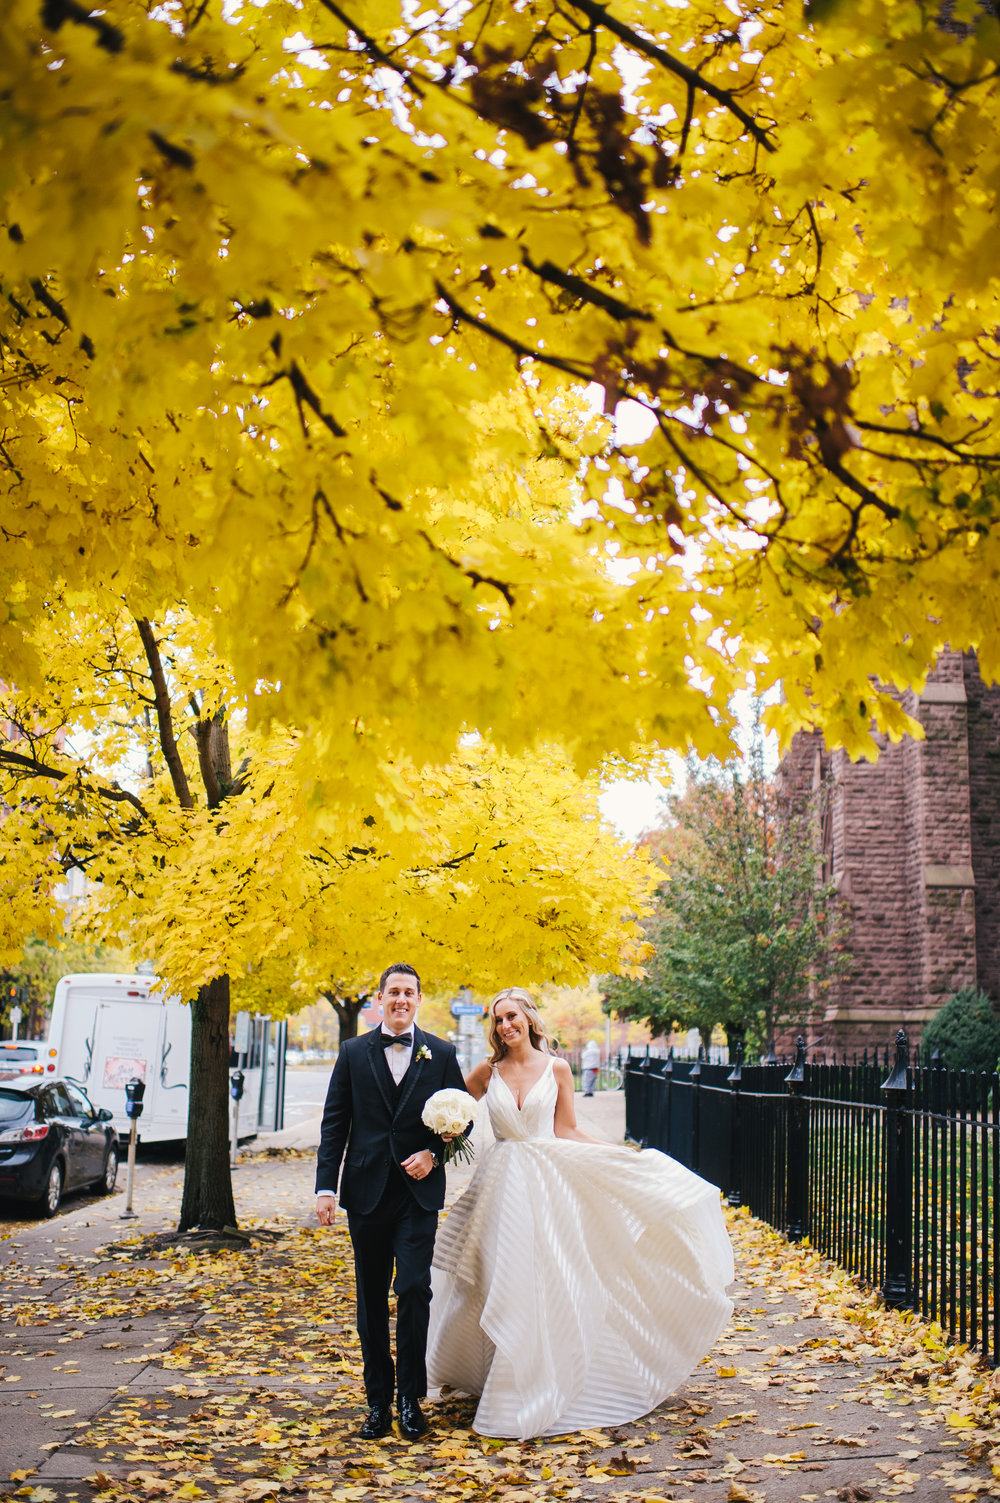 Bride and groom pose for outdoor wedding photos for black, white, and gold wedding in Buffalo, NY planned by Exhale Events. Find more wedding inspiration at exhale-events.com!